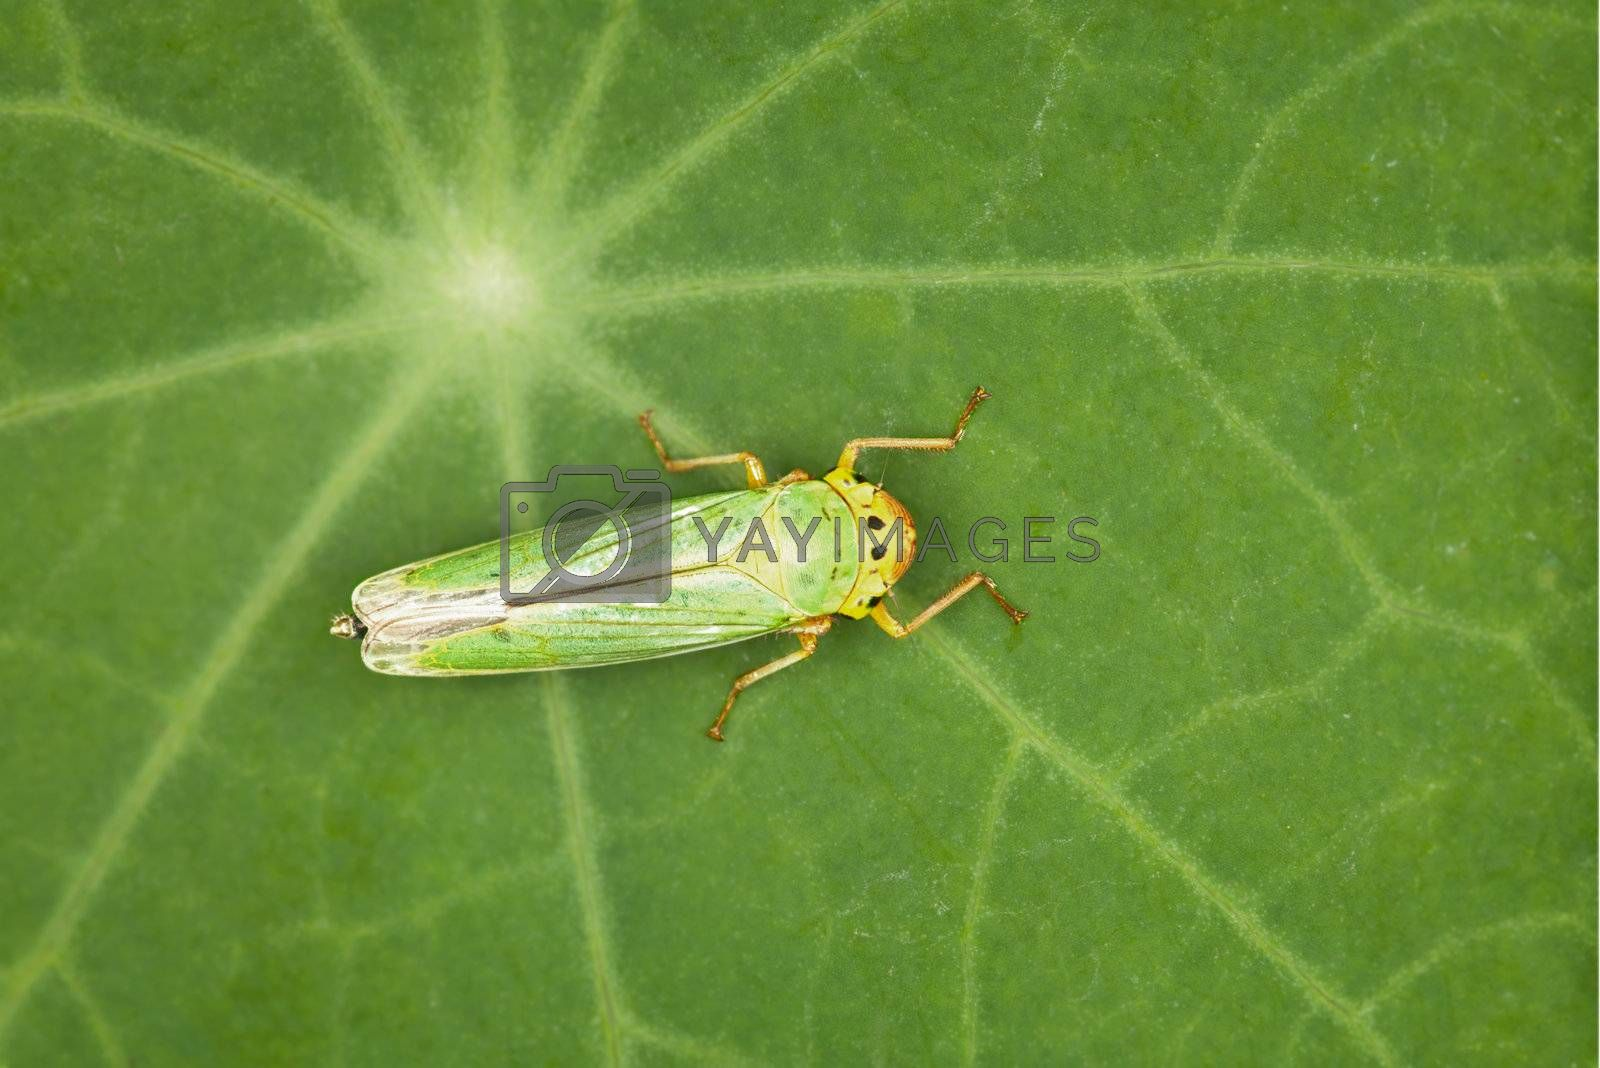 Leafhopper - small green insect on a plant leaf